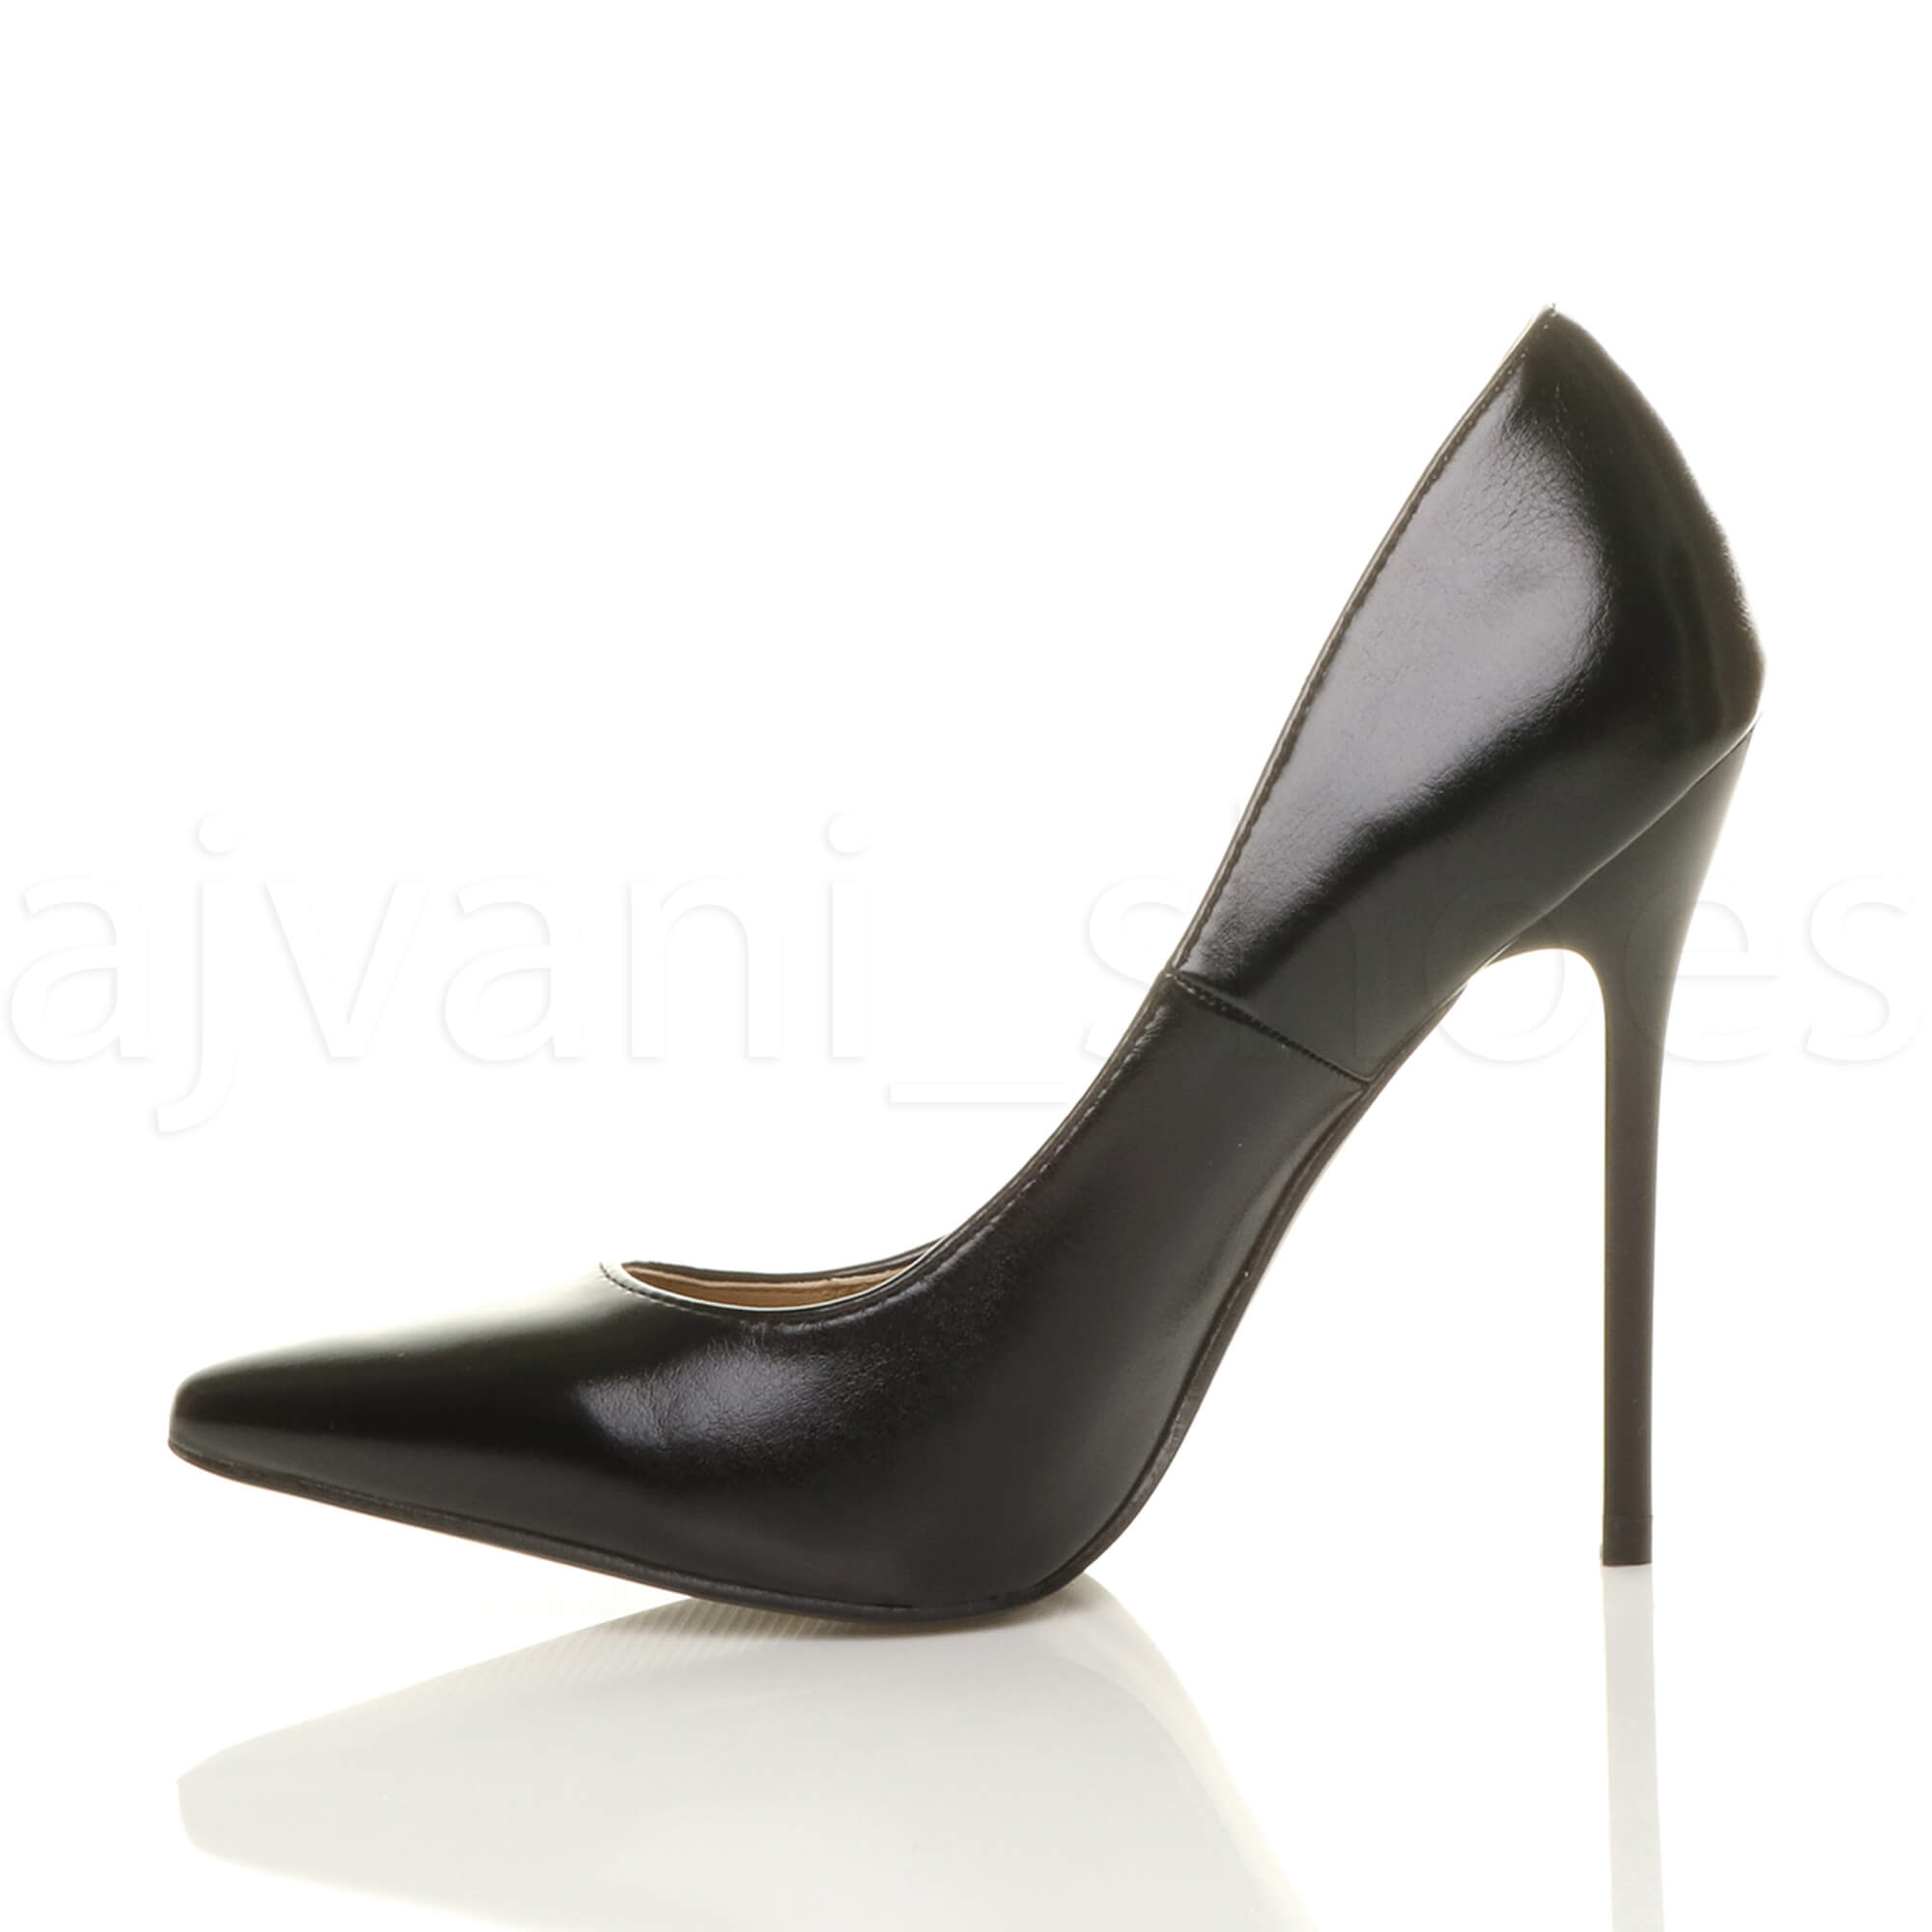 WOMENS-LADIES-HIGH-HEEL-POINTED-CONTRAST-COURT-SMART-PARTY-WORK-SHOES-PUMPS-SIZE thumbnail 12